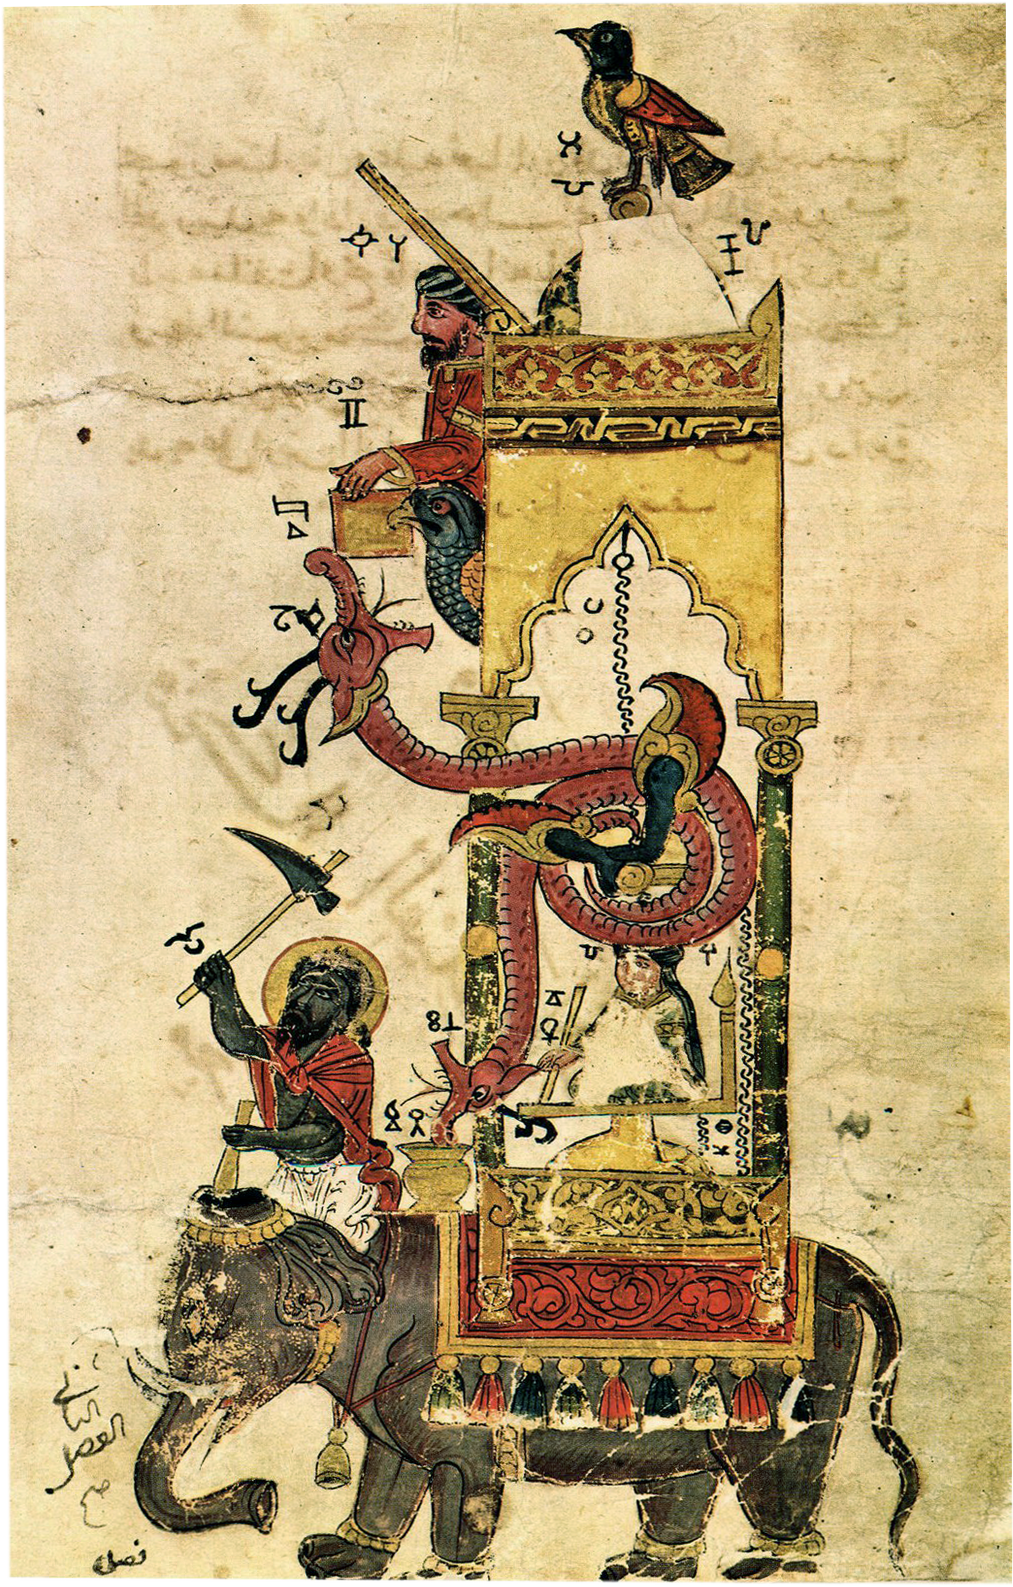 http://upload.wikimedia.org/wikipedia/commons/7/76/Al-jazari_elephant_clock.png